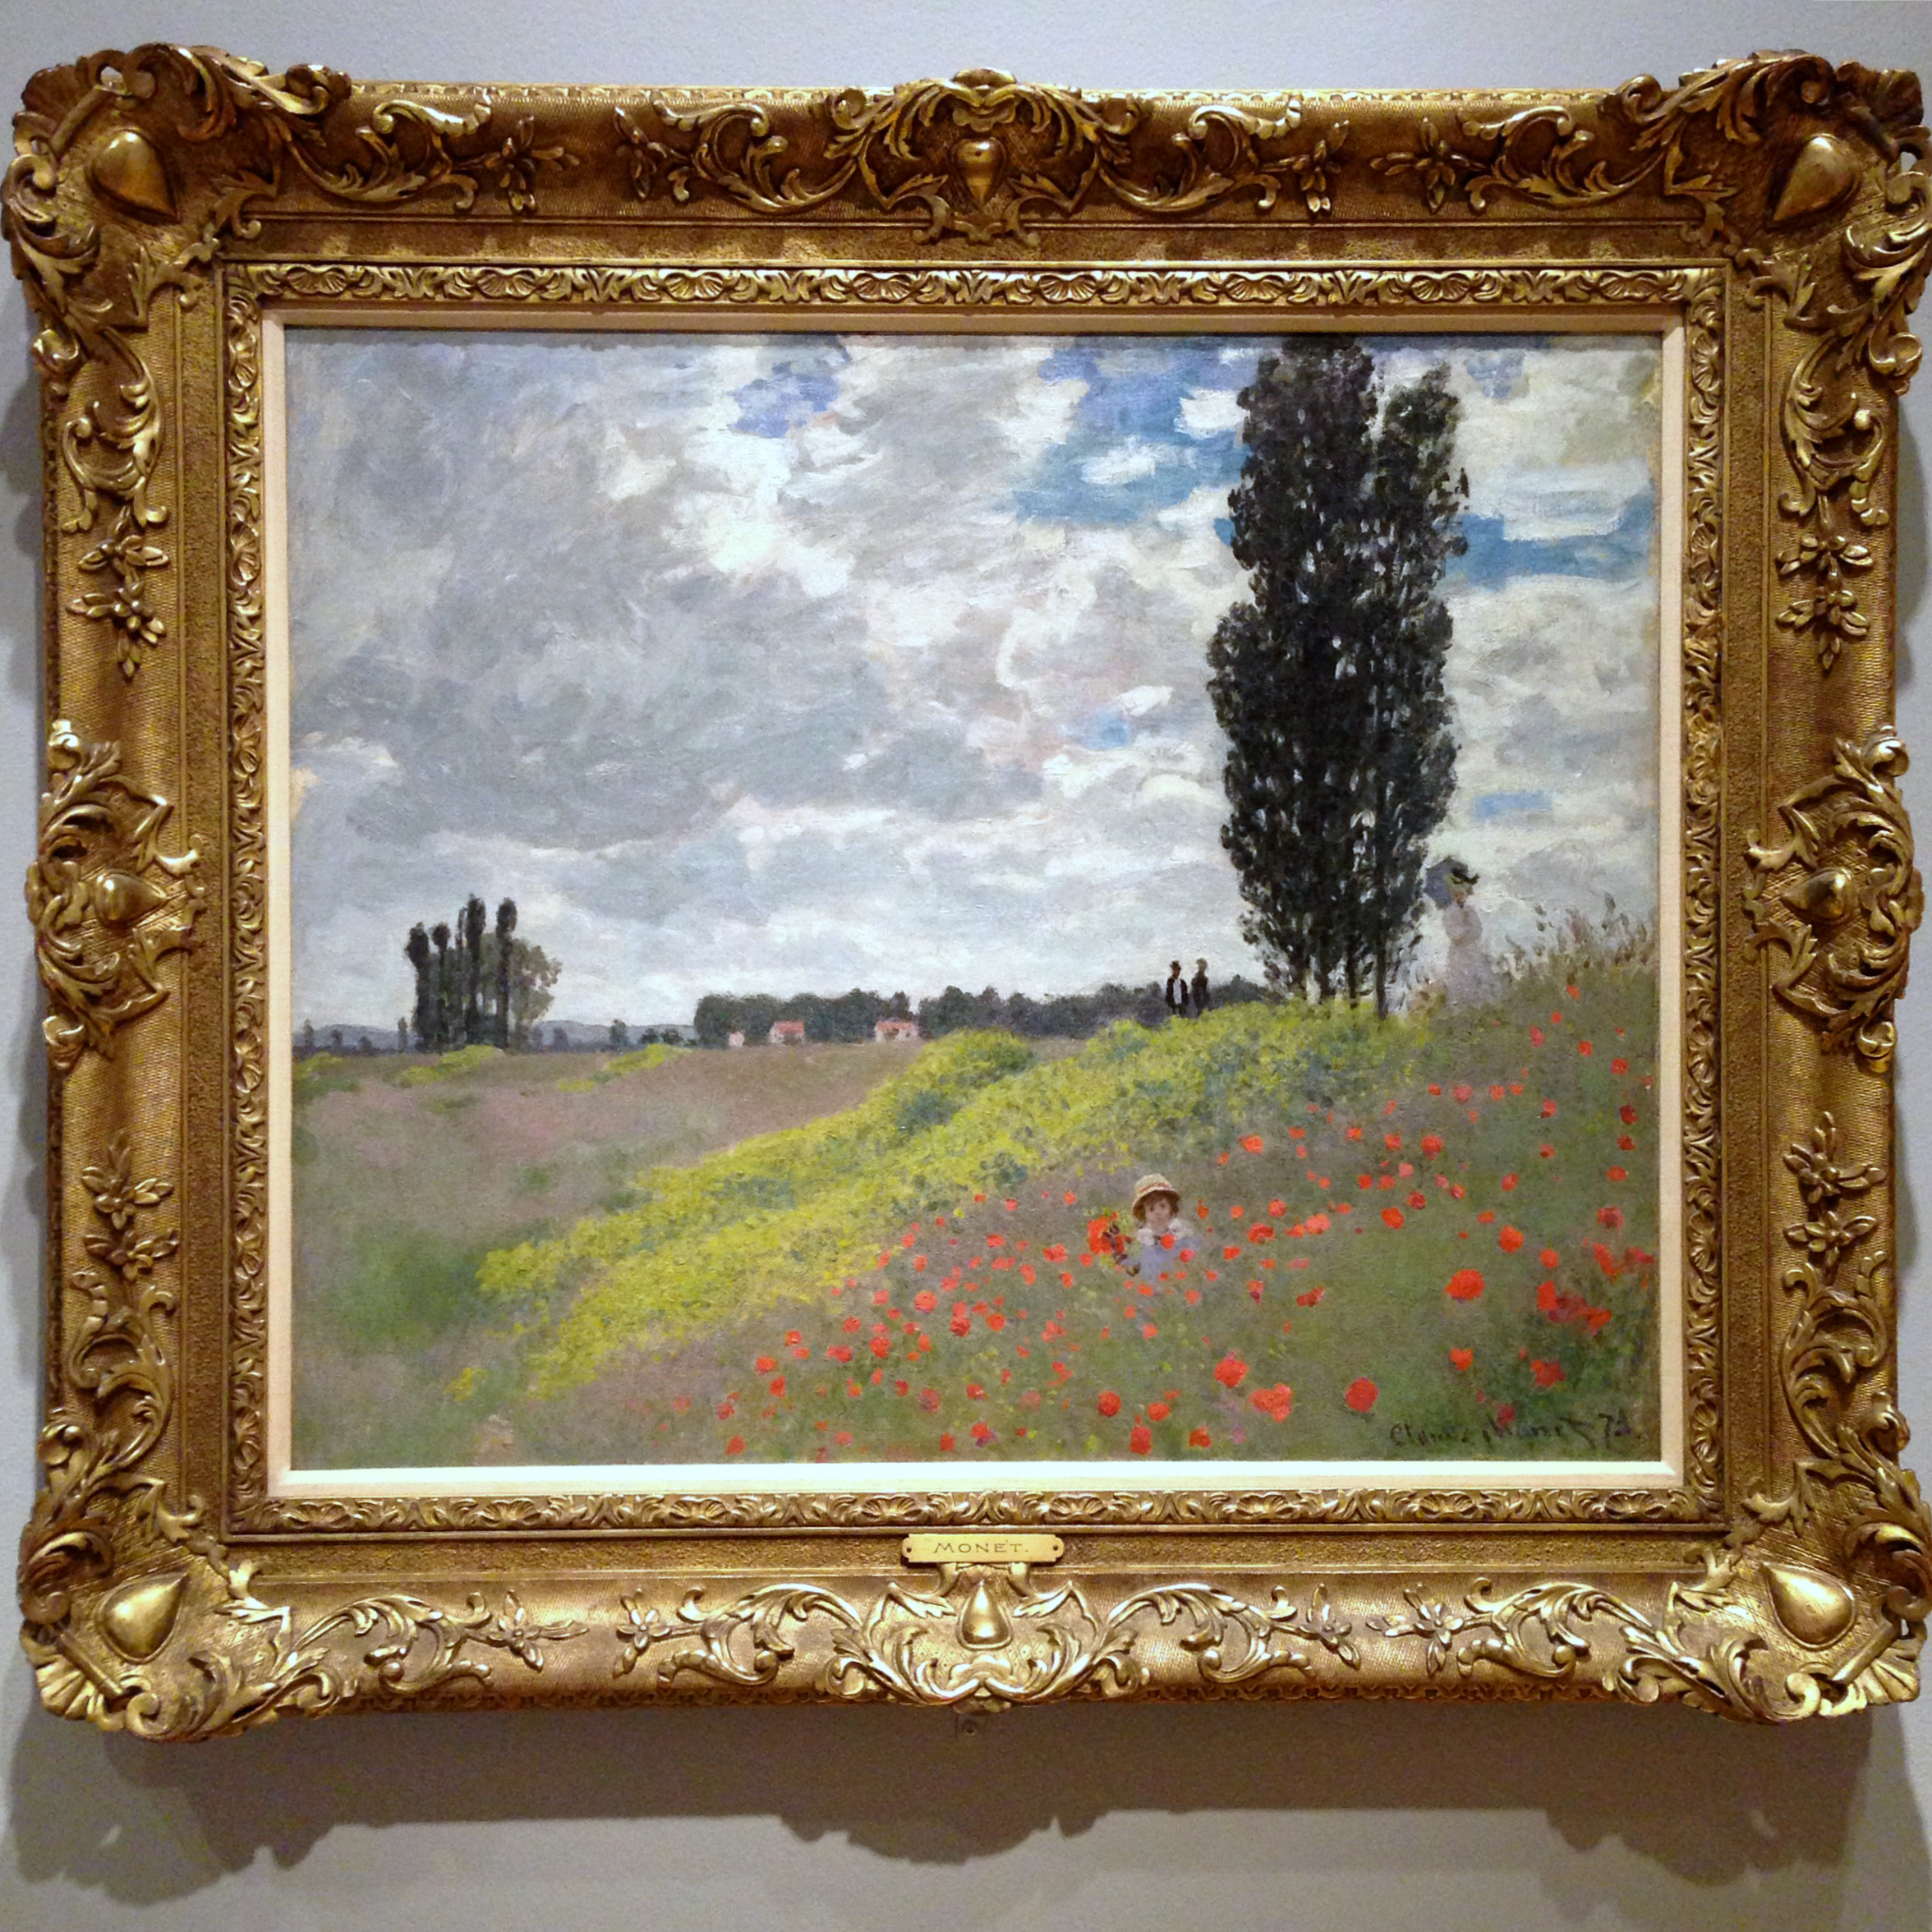 Claude Monet, A Walk in the Fields at Argenteuil, 1873